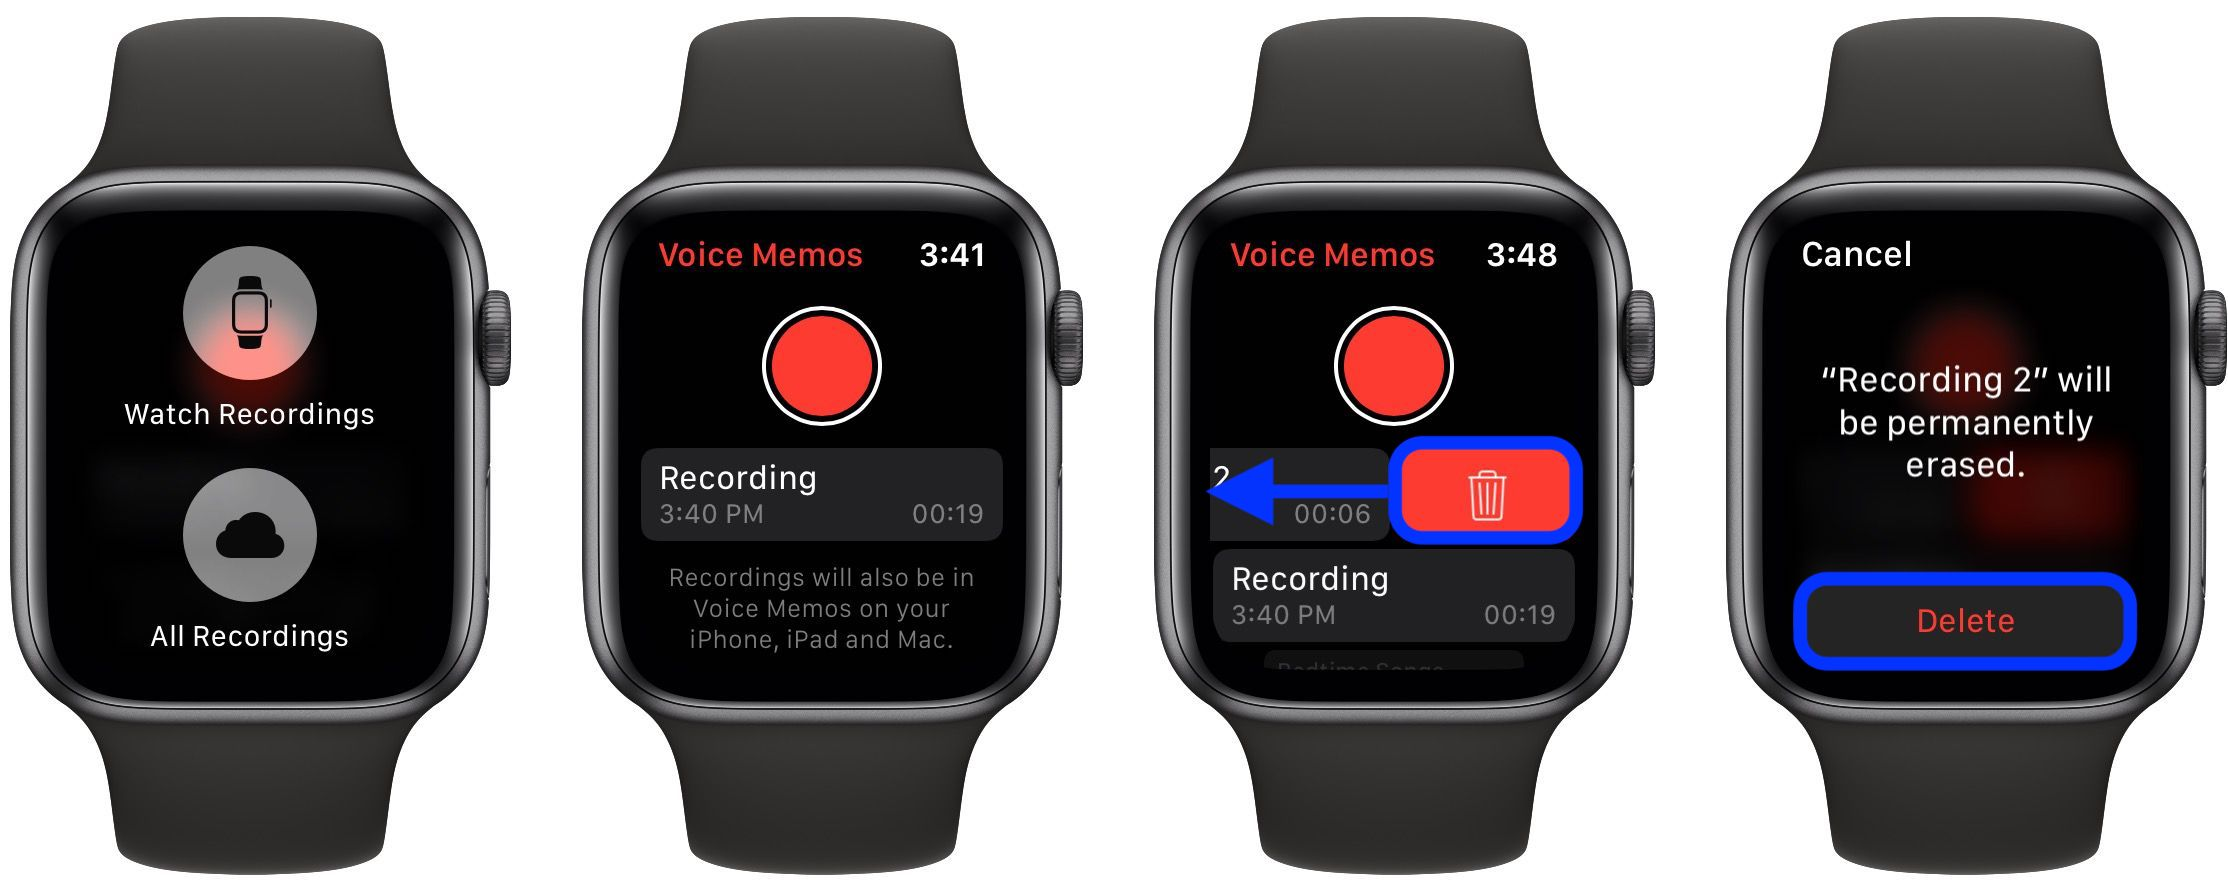 how to record Voice Memos Apple Watch